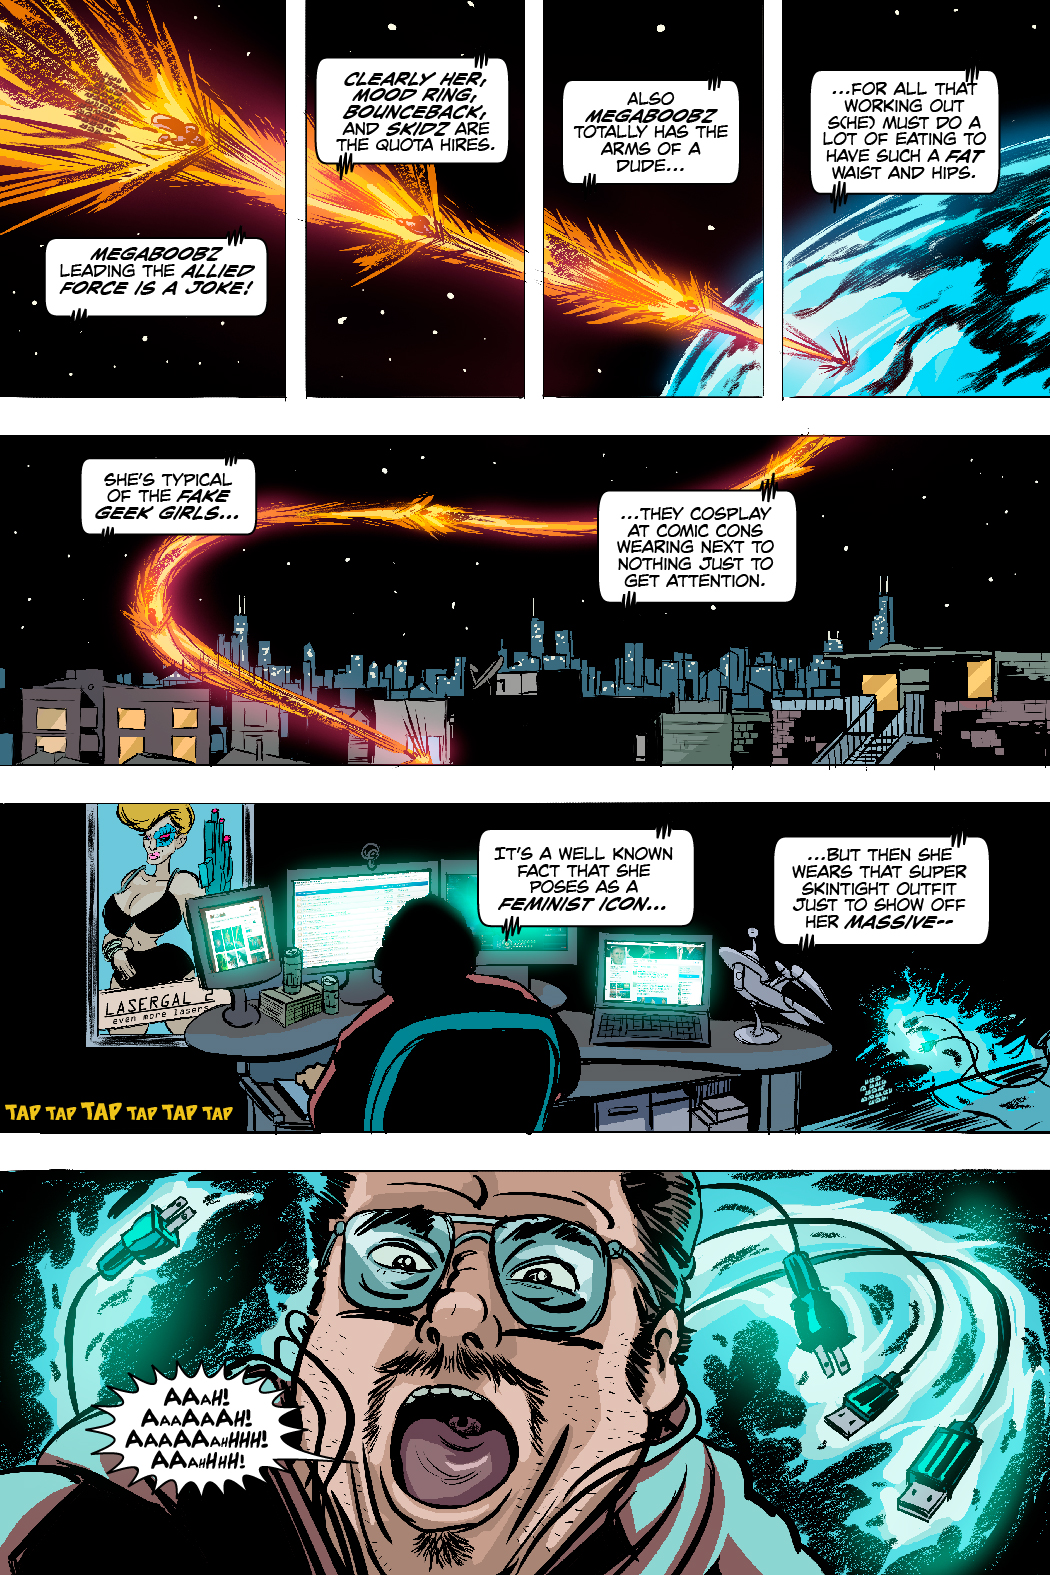 PAGE 82 Panel 1. Wide shot of Earth with a small shard of alien machinery entering and burning up the atmosphere. SFX: TAP TAP TAP TAP TAP TROLL GUY: MegaBoobz leading the Allied Force is a joke! Clearly her, Mood Ring BounceBack, and Skidz are the quota hires.   SFX: TAP TAP TAP TAP TAP TAP TAP Panel 2. Exterior of the apartment building, and a contextual view of city.  TROLL GUY: Also MegaBoobz totally has the arms of a dude... for all that working out s(he) must do a lot of eating to have such a fat waist and hips. She's typical of the fake geek girls that cosplay at comic cons wearing next to nothing just to get attention.  SFX: TAP TAP TAP TAP TAP TAP TAP TAP TAP TAP Panel 3. The back of a desk chair showing an enormously heavy nerd looking a lot like the Simpson's Comic Book Guy.  TROLL GUY: It's a well known fact that while she poses as a feminist icon, but then she wears that super skintight outfit that shows off her massive-- Panel 4. Electrified wires spin up around him TROLL GUY: AAAAAAHHHH, AAAAAAH, AAAAAAAHHHHHHH!